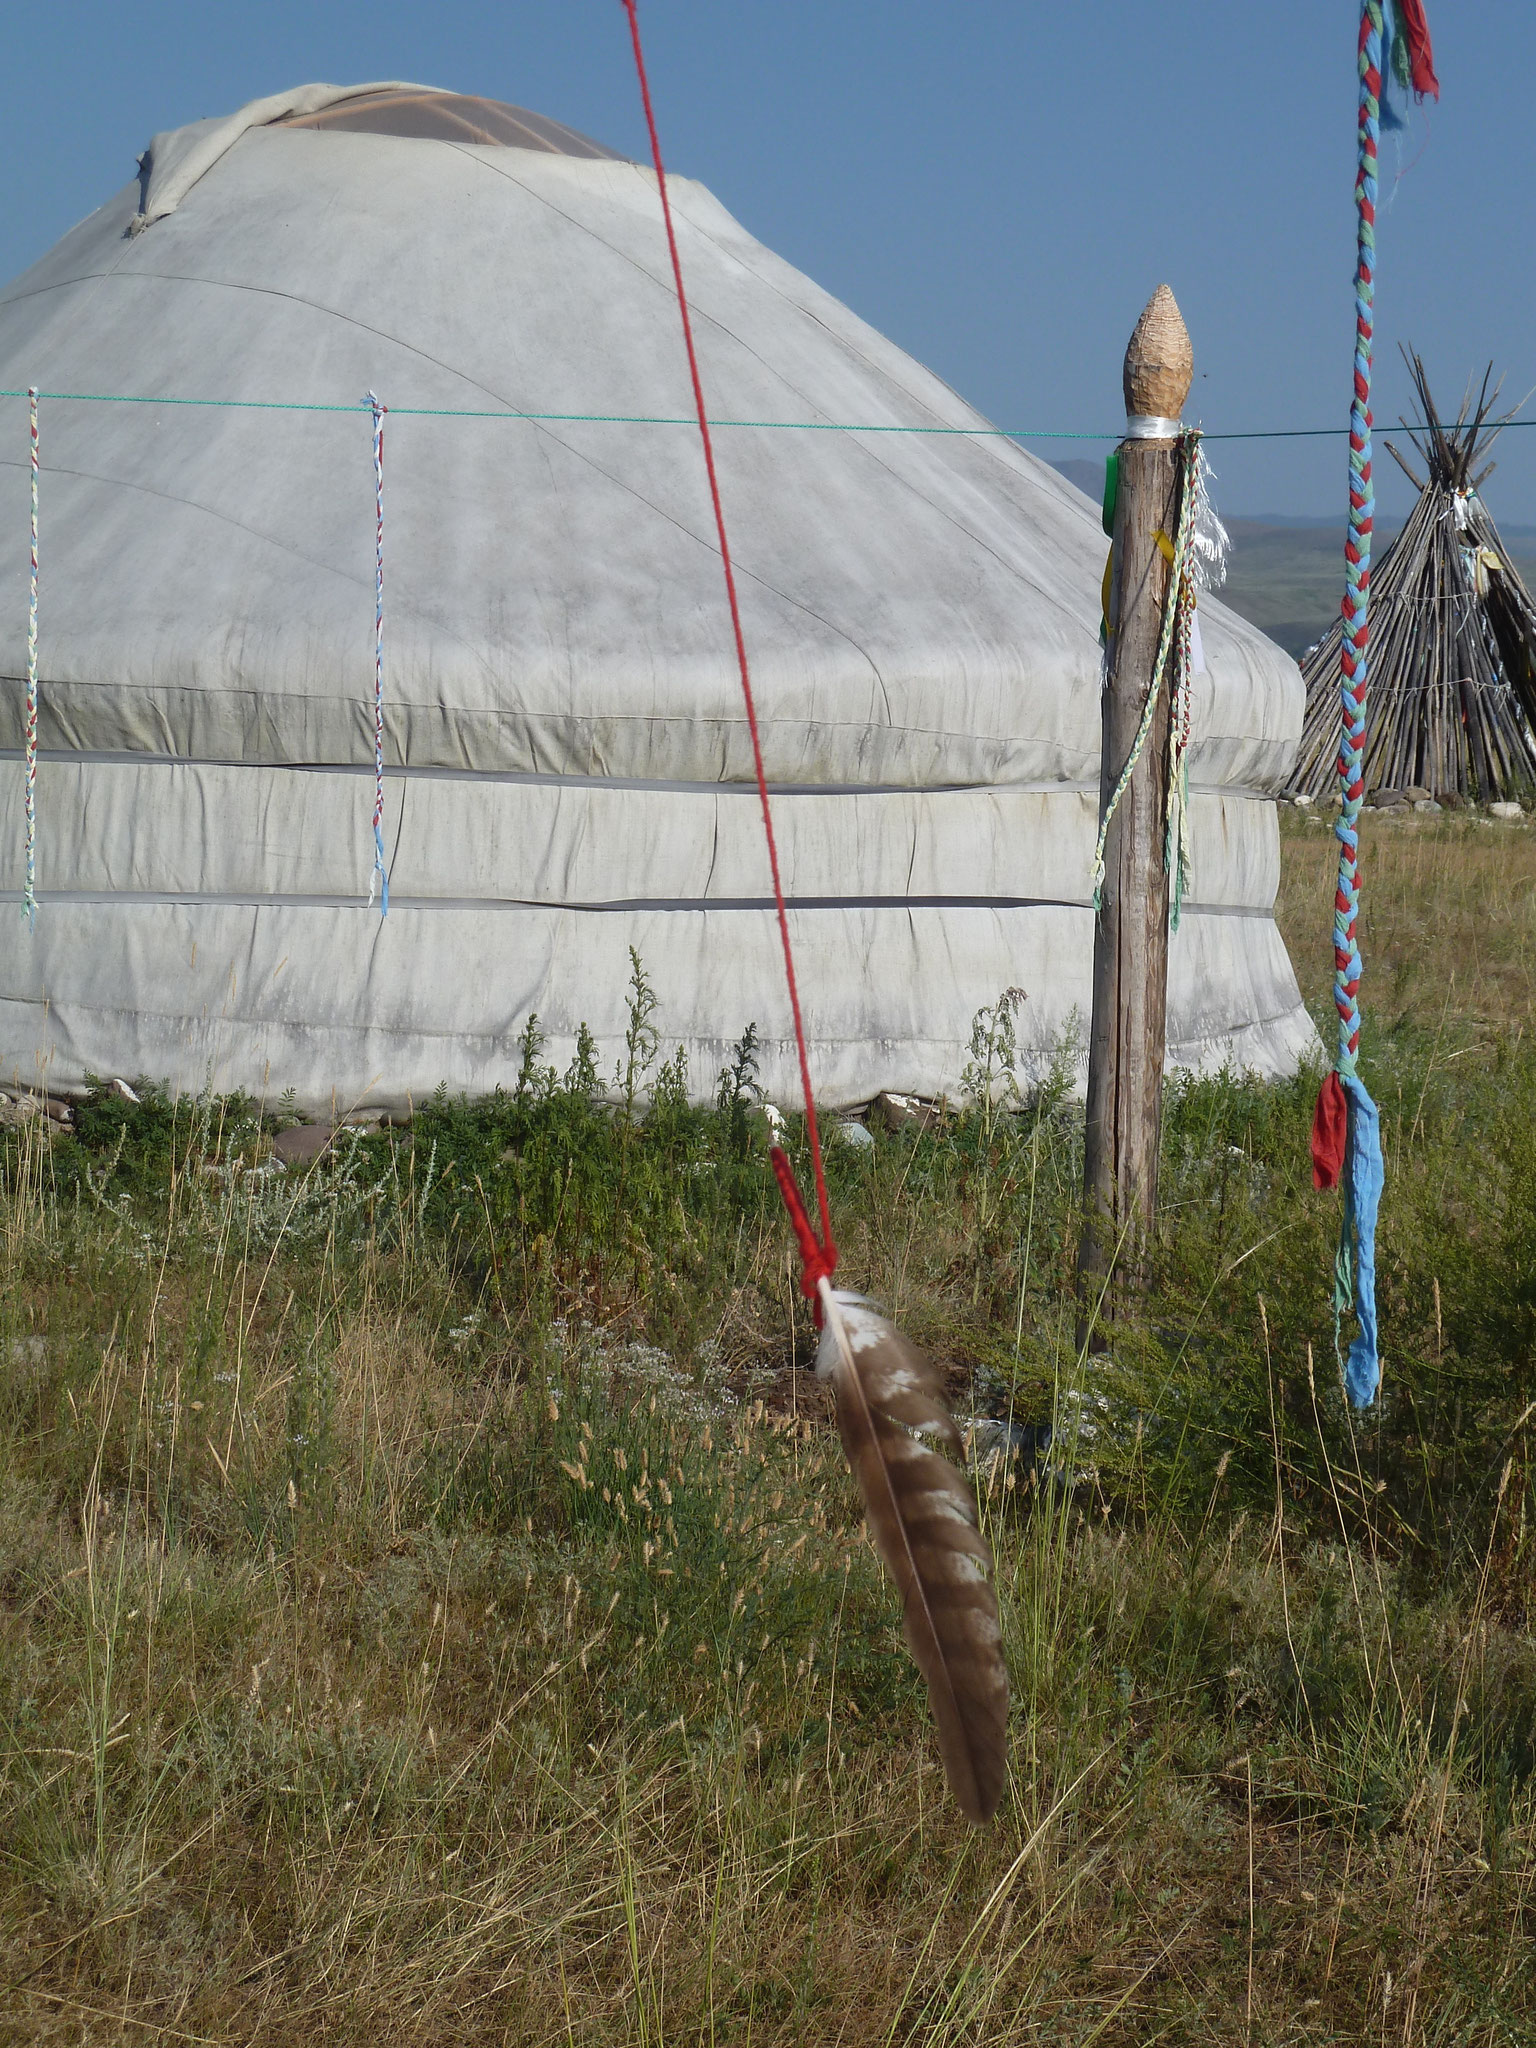 Yurt Camp at Bij-Chem